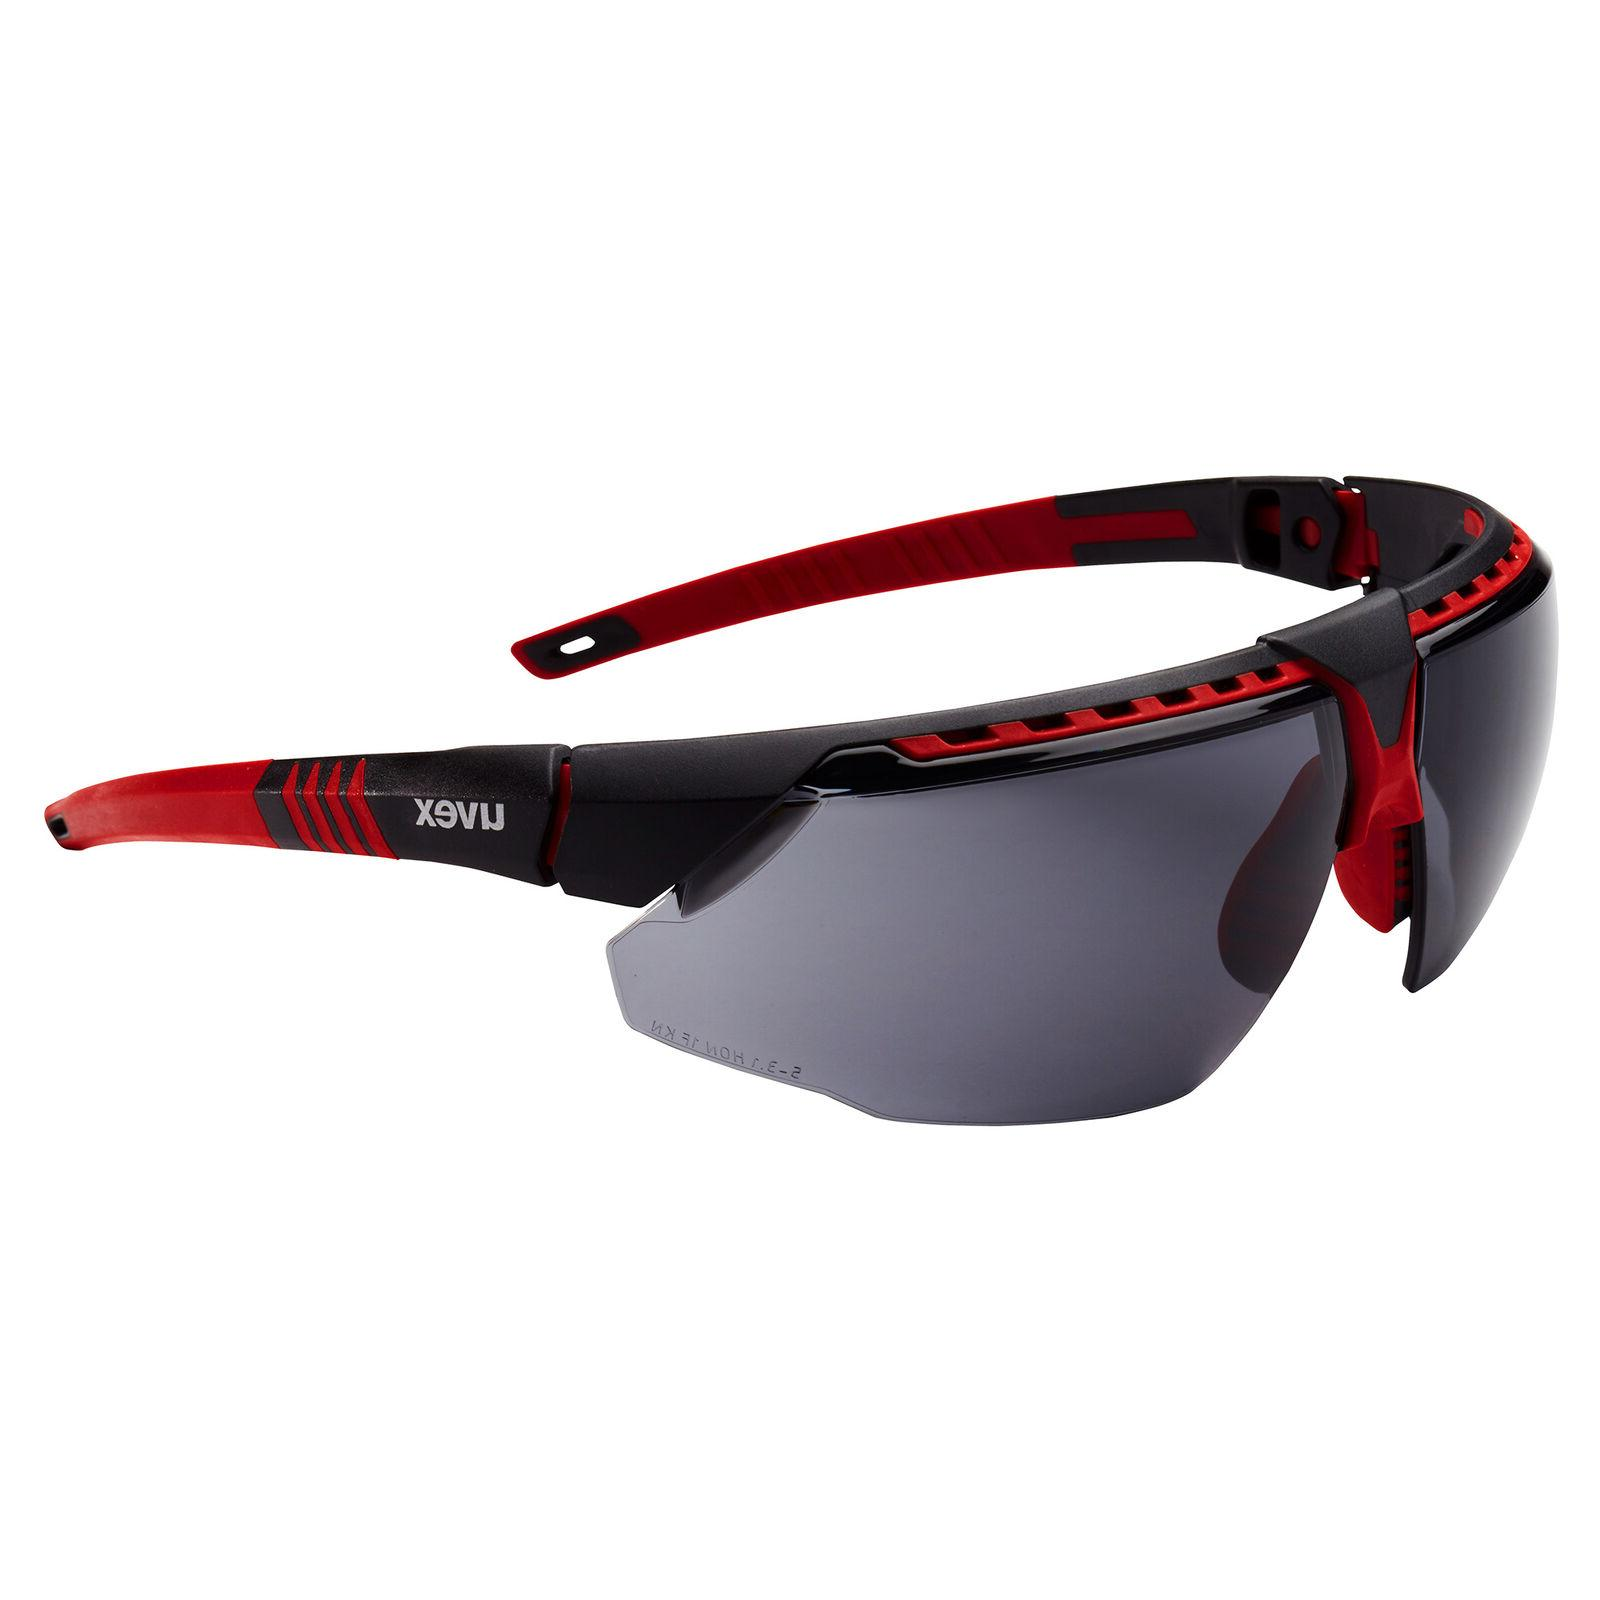 avatar safety glasses with smoke anti fog